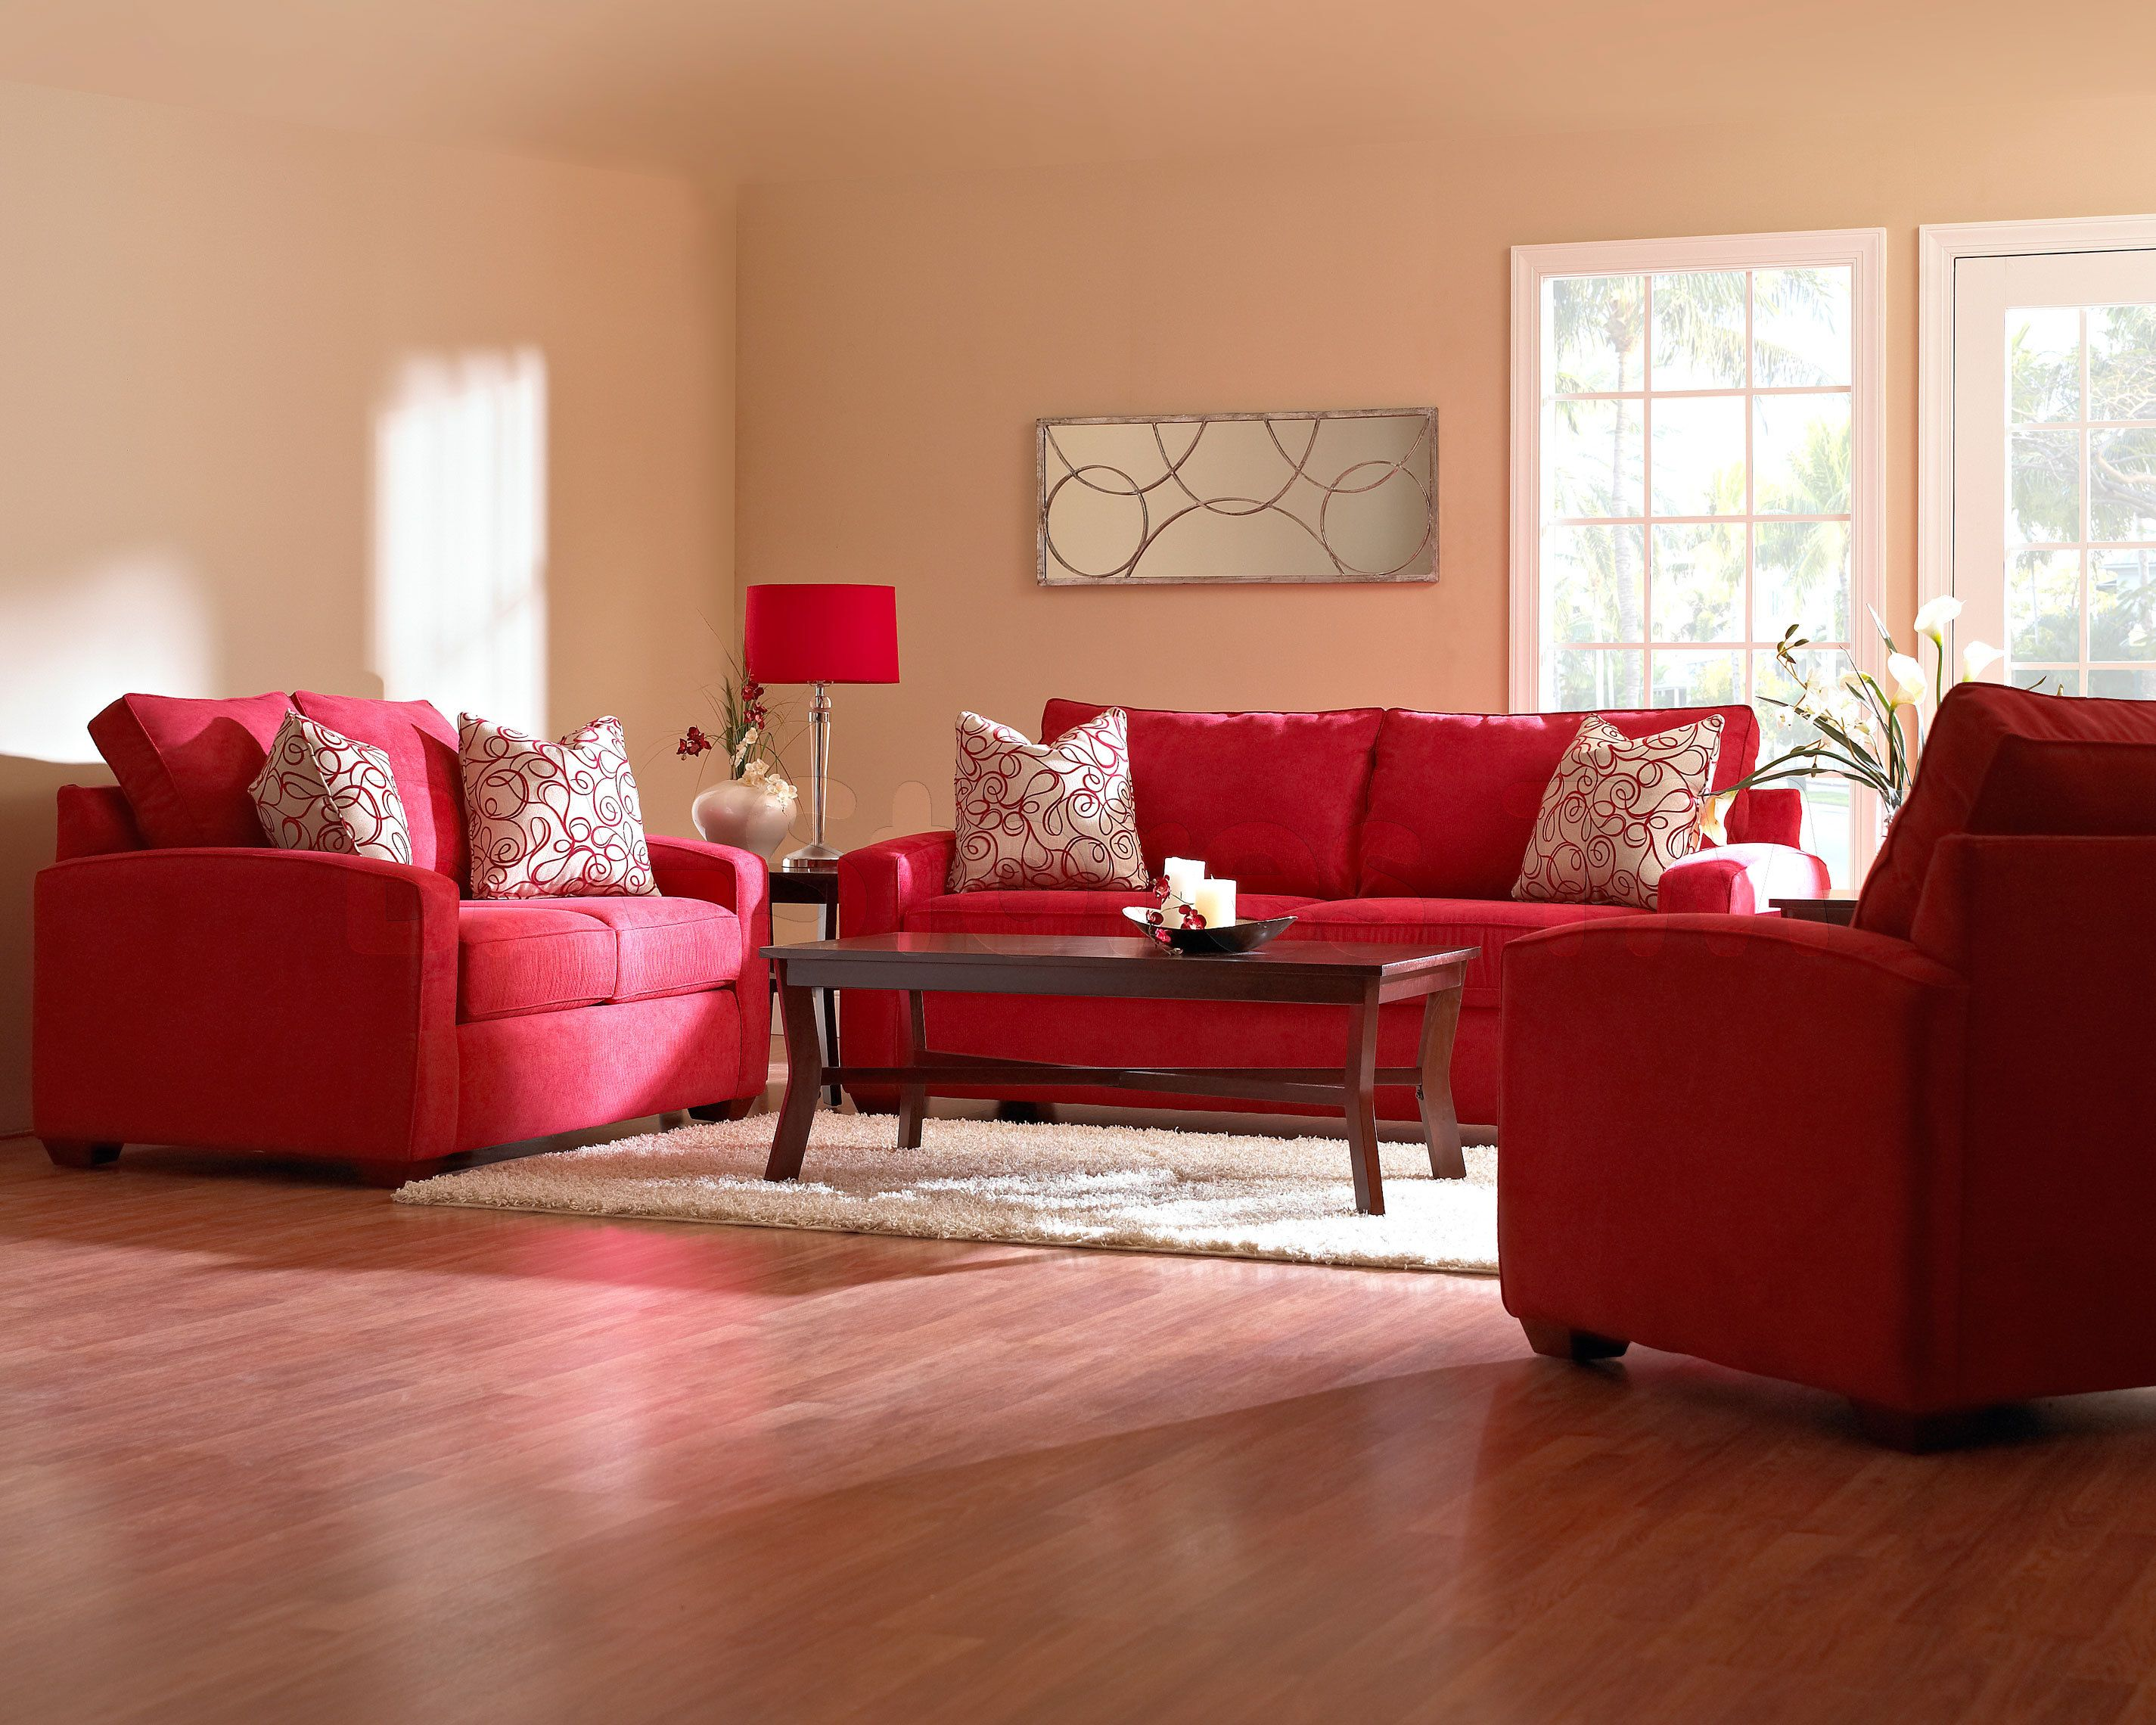 Image Result For Living Rooms With Red Furniture | House | Pinterest .